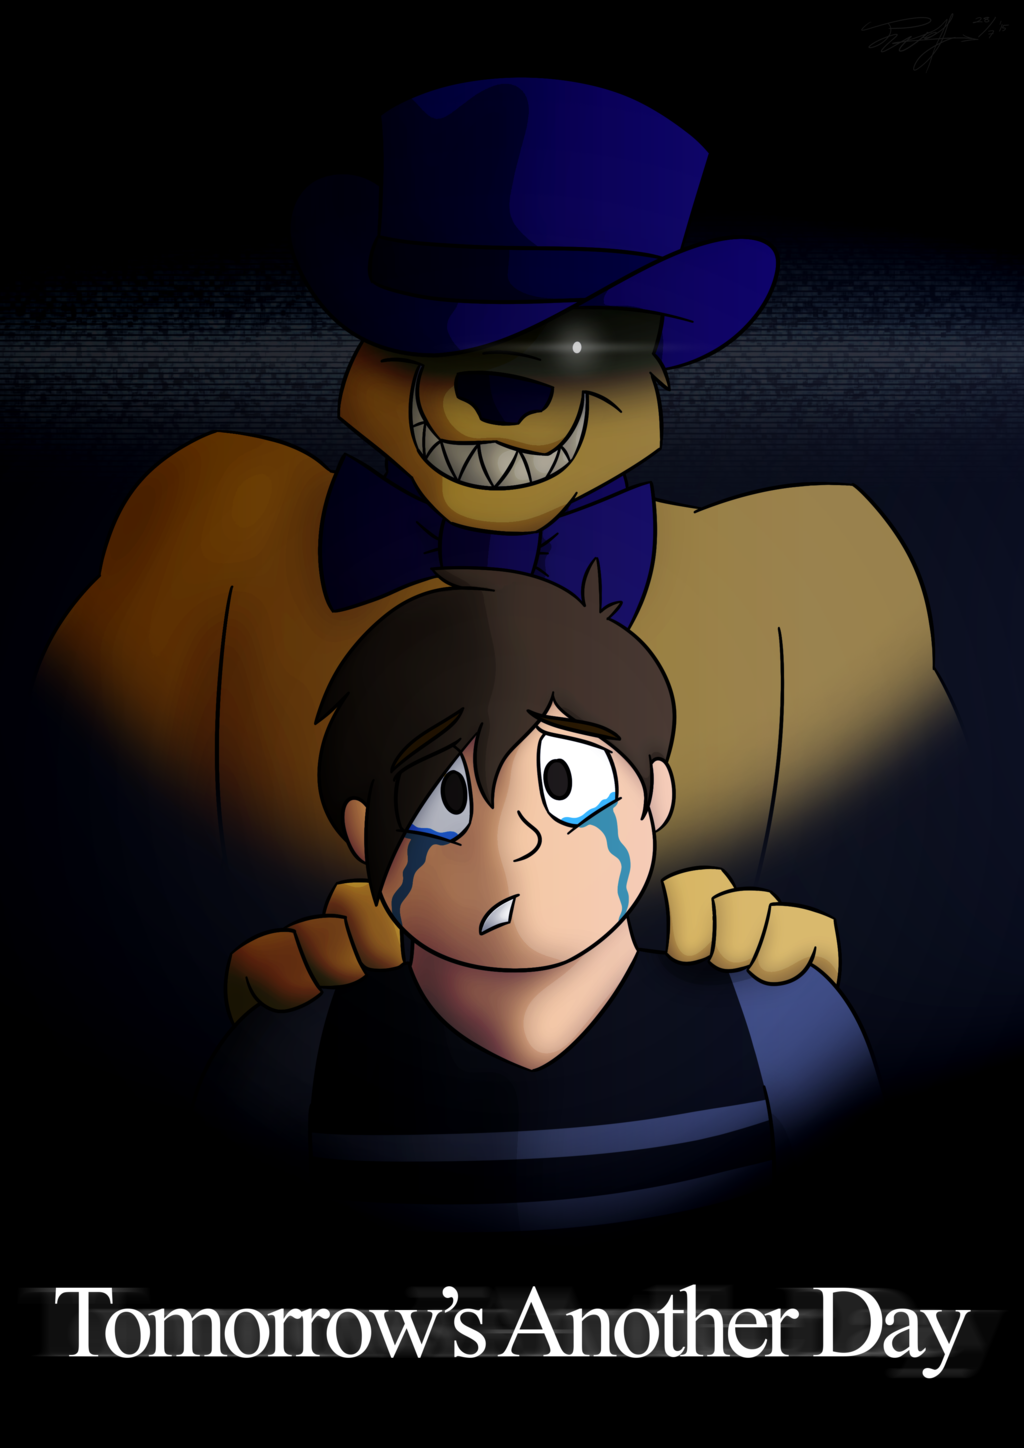 FNaF 4 - Tomorrow's Another Day